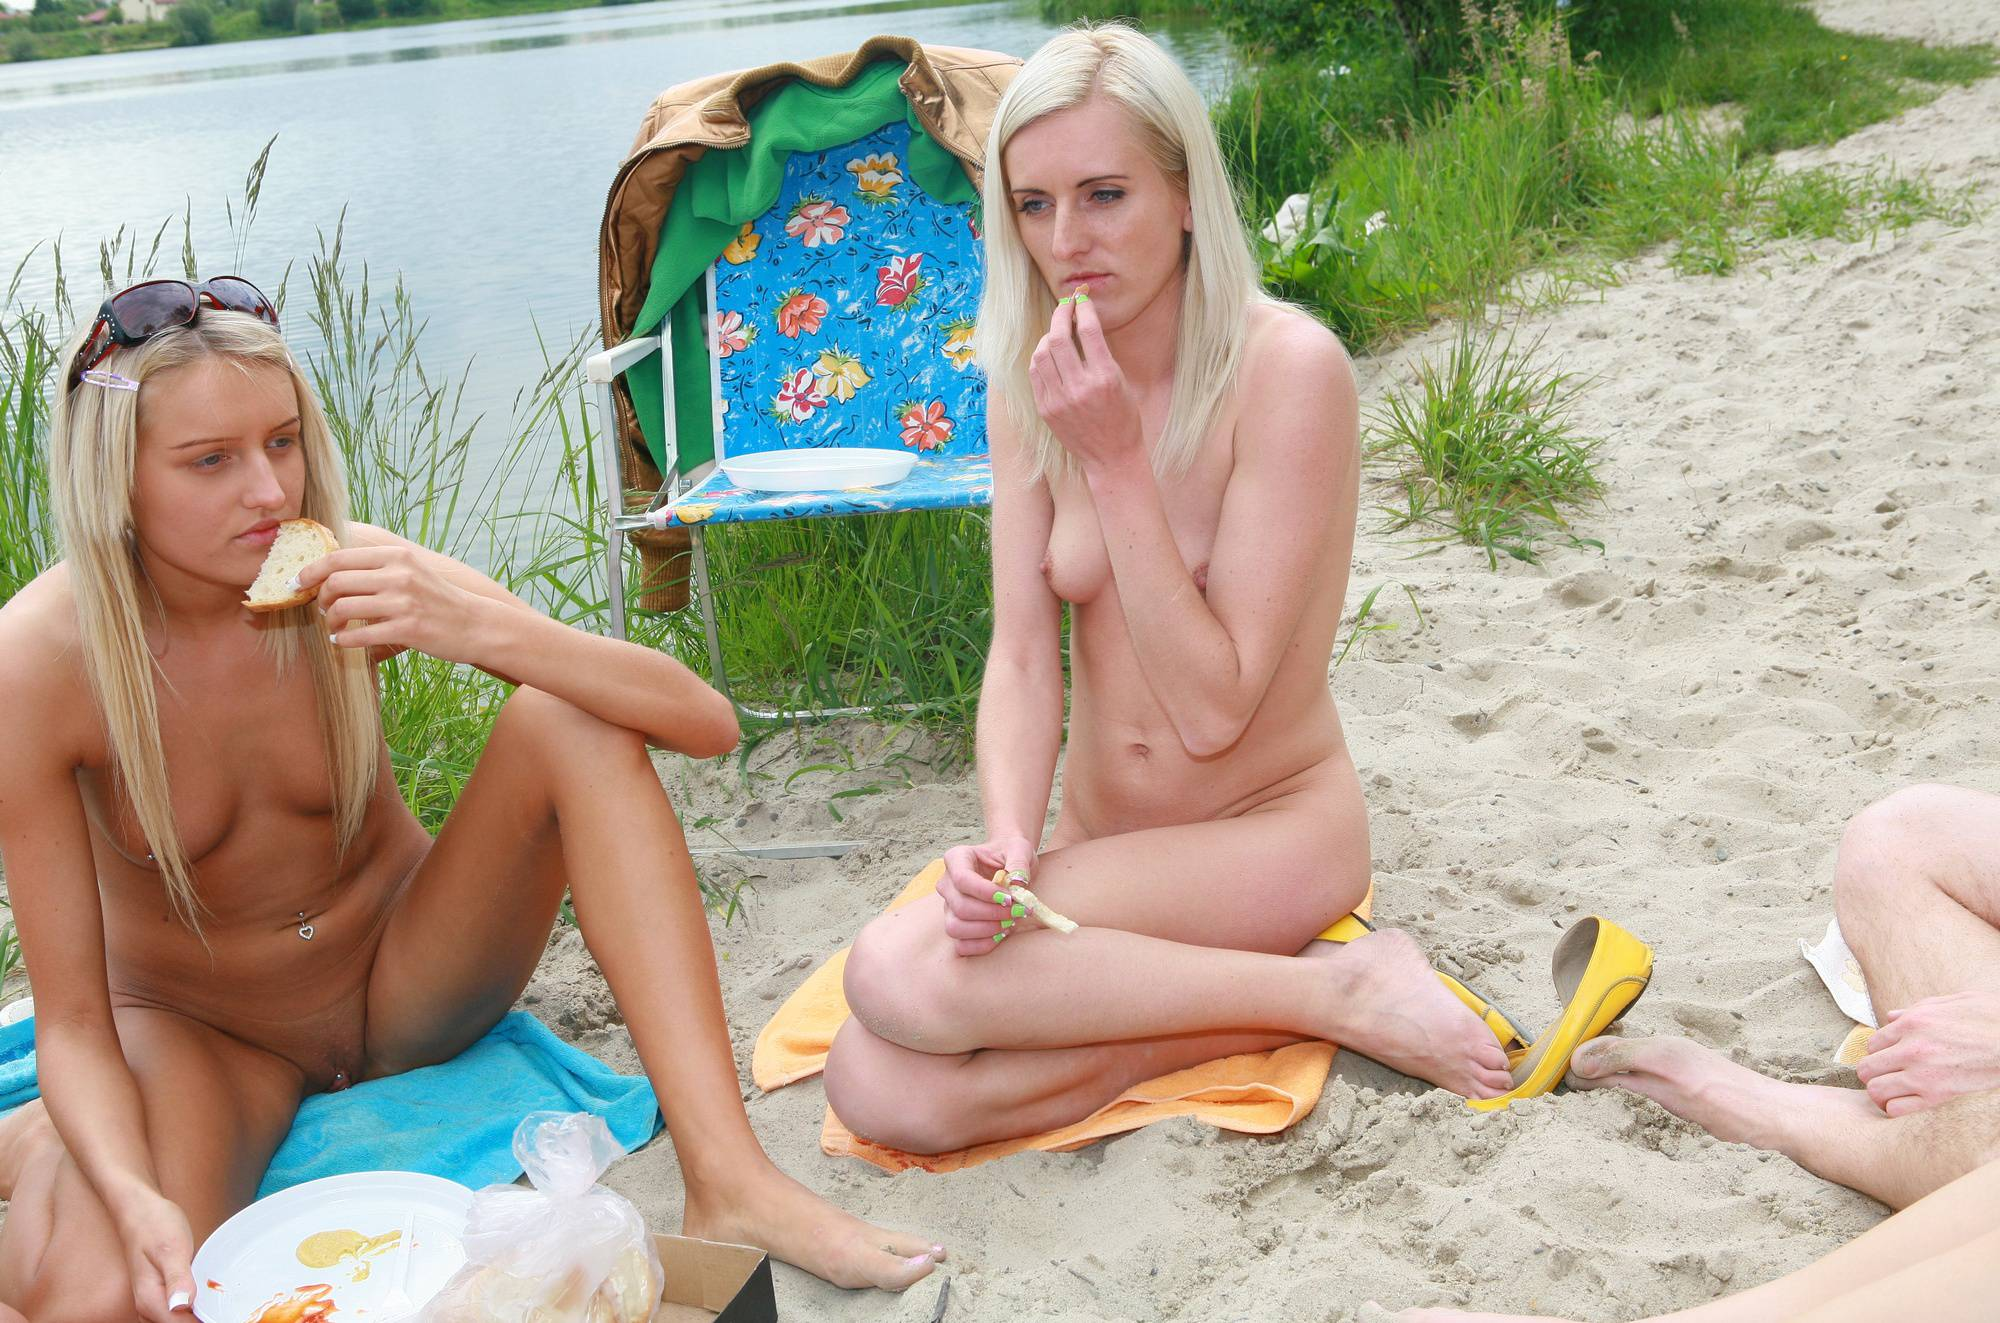 Nudist Gallery Lakeside Picnic For All - 1